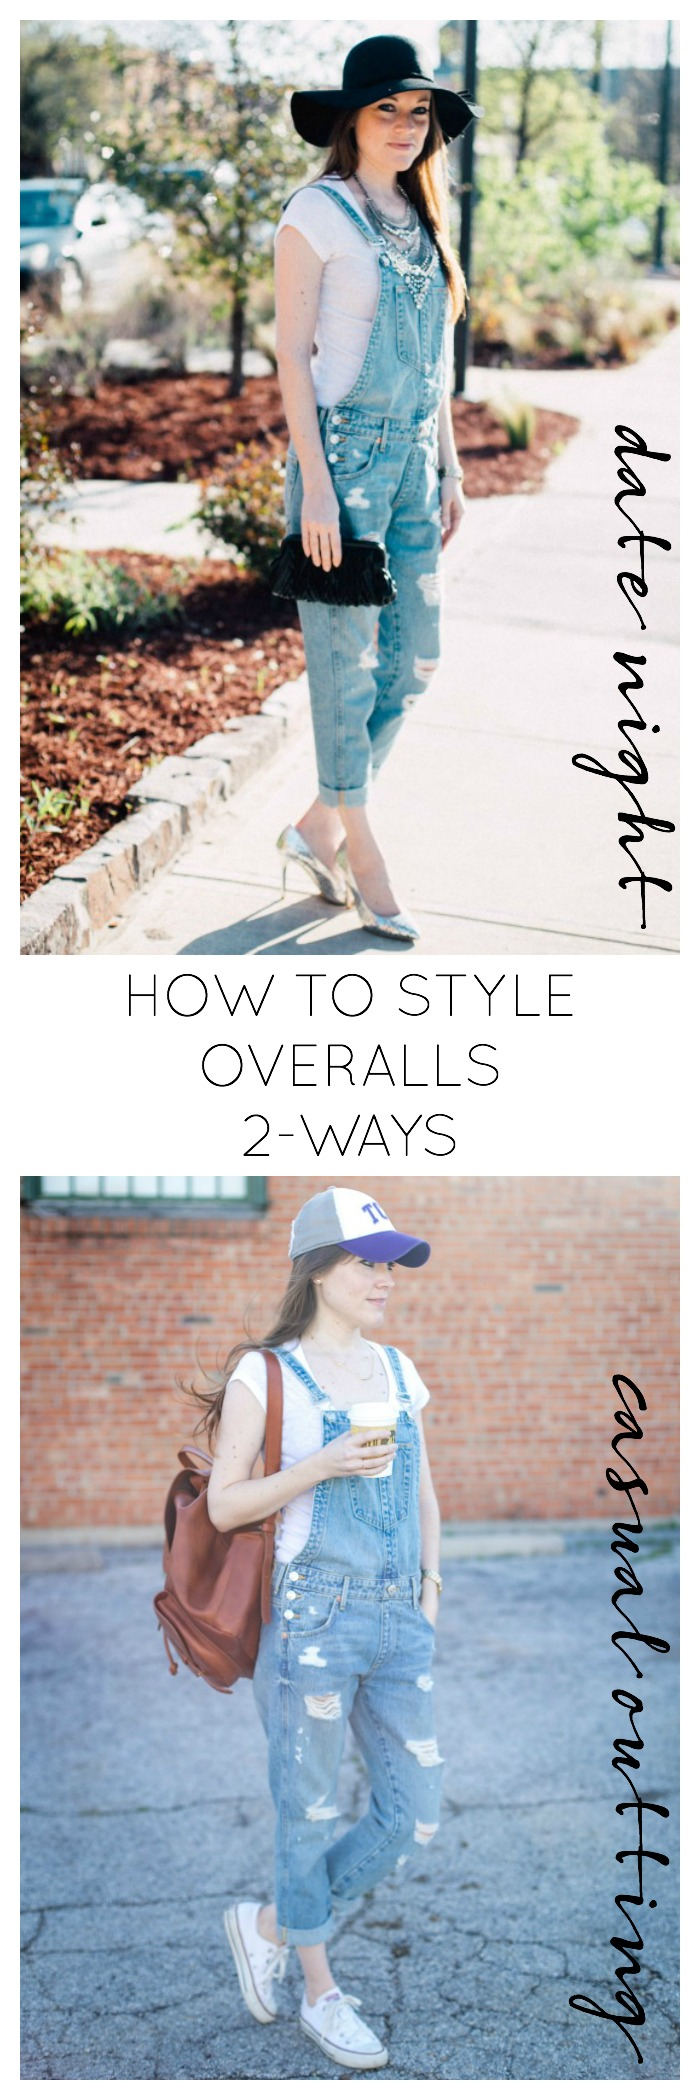 How-To Style Overalls 2 Ways